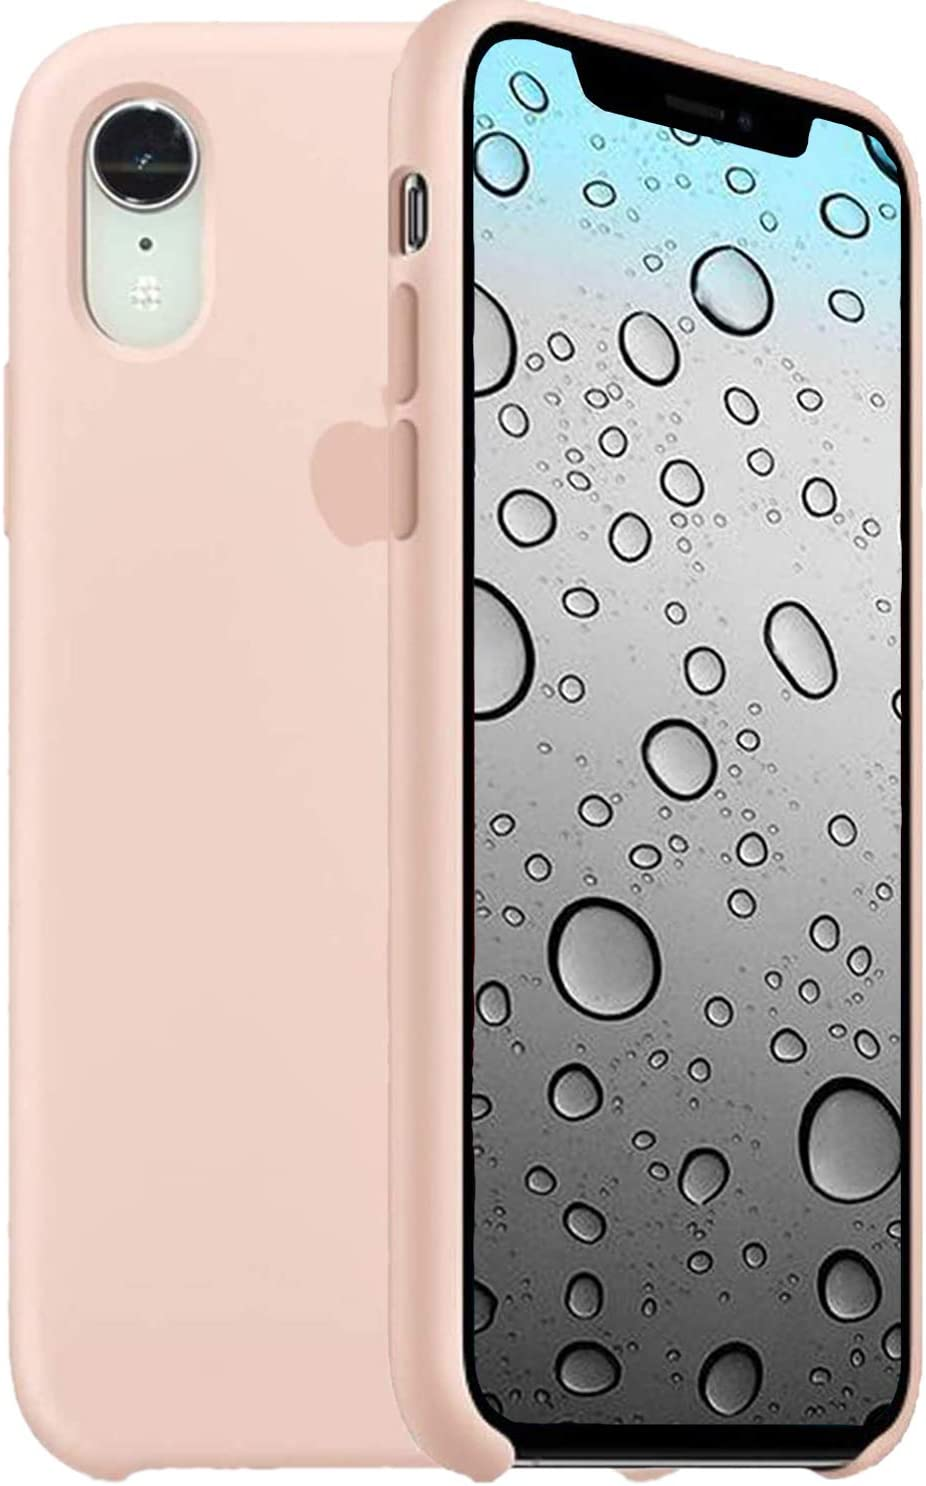 Liquid Silicone Case Compatible for iPhone XR, Simple Style Full Body Protection Compatible with iPhone XR 6.1 Inch - Pink Sand